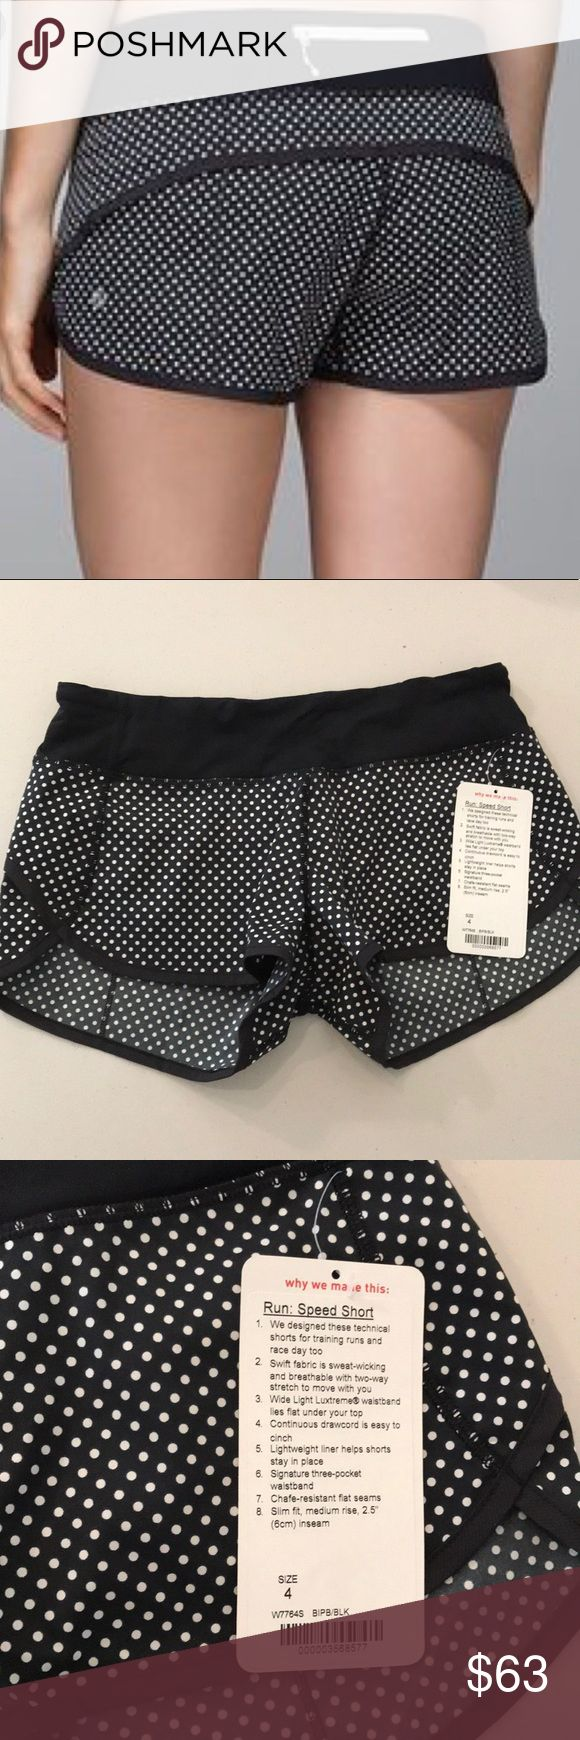 """NWT BIPB / BLACK LULULEMON RUN SPEED SHORT -Size 4 Brand: Lululemon Athletica run: Speed Short 2.5 """" inseam          Condition: New with tag 